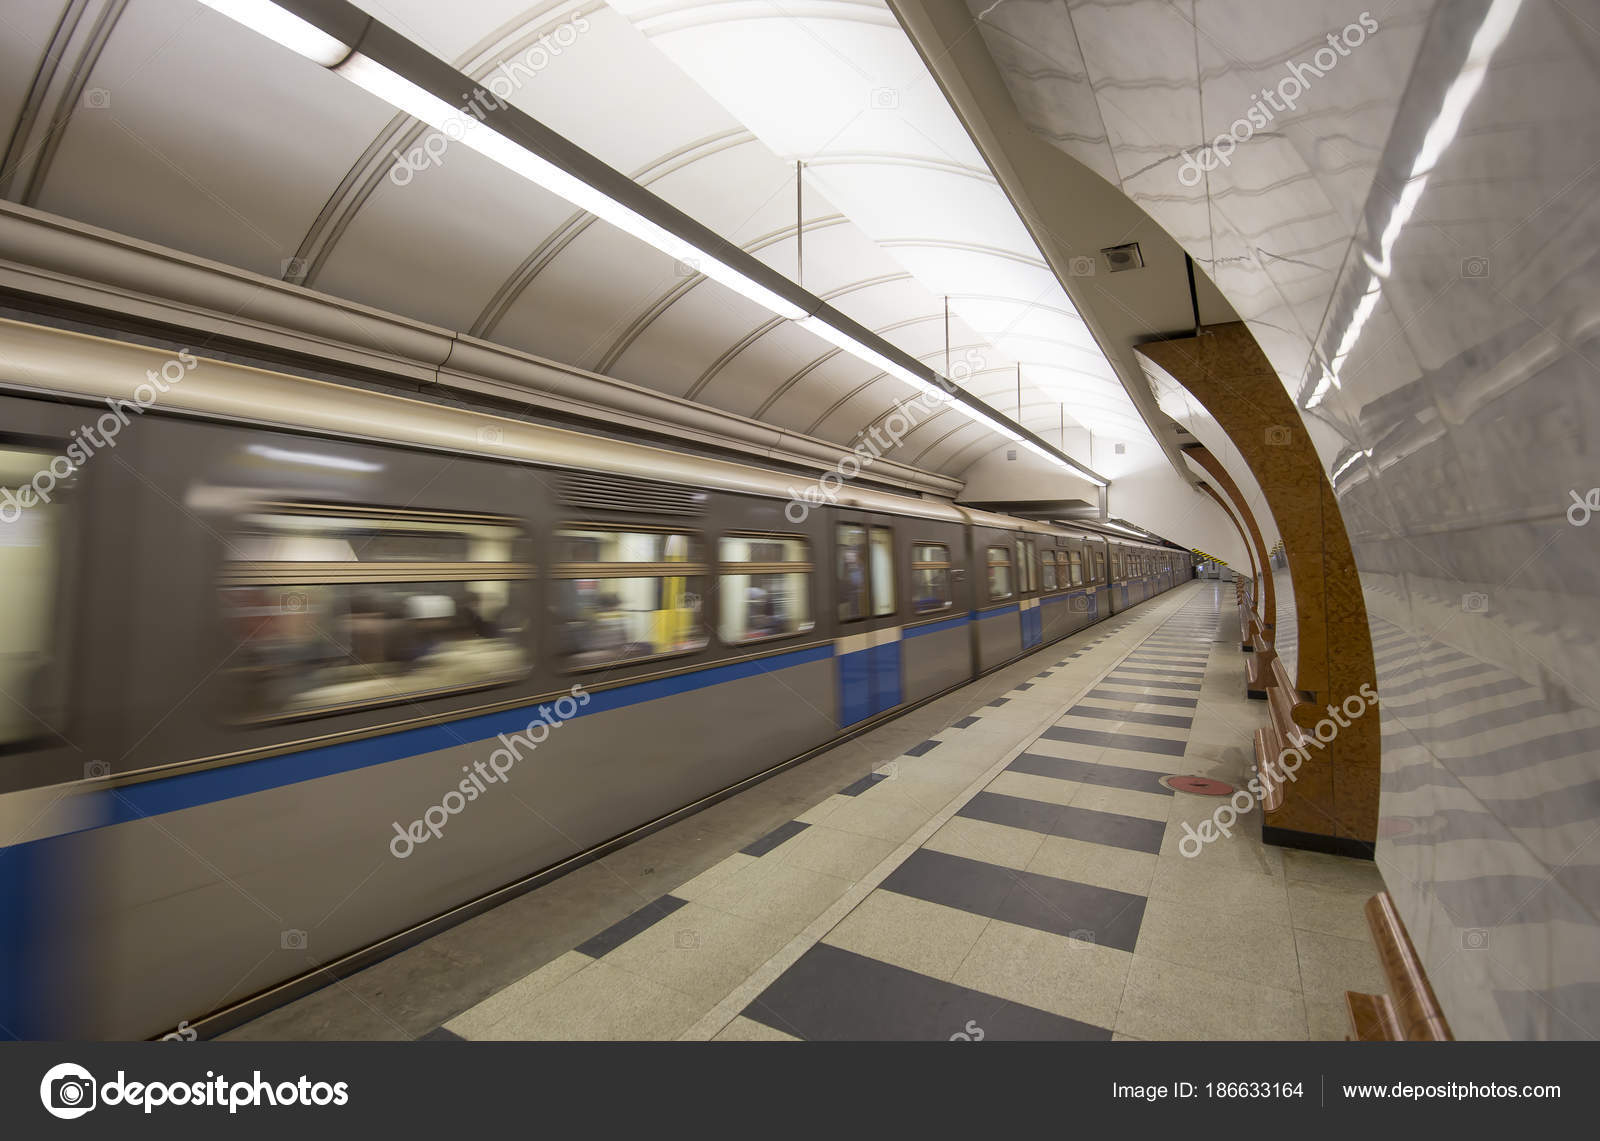 In Moscow, the opening of two metro stations is scheduled for a month on the Butovskaya line 64